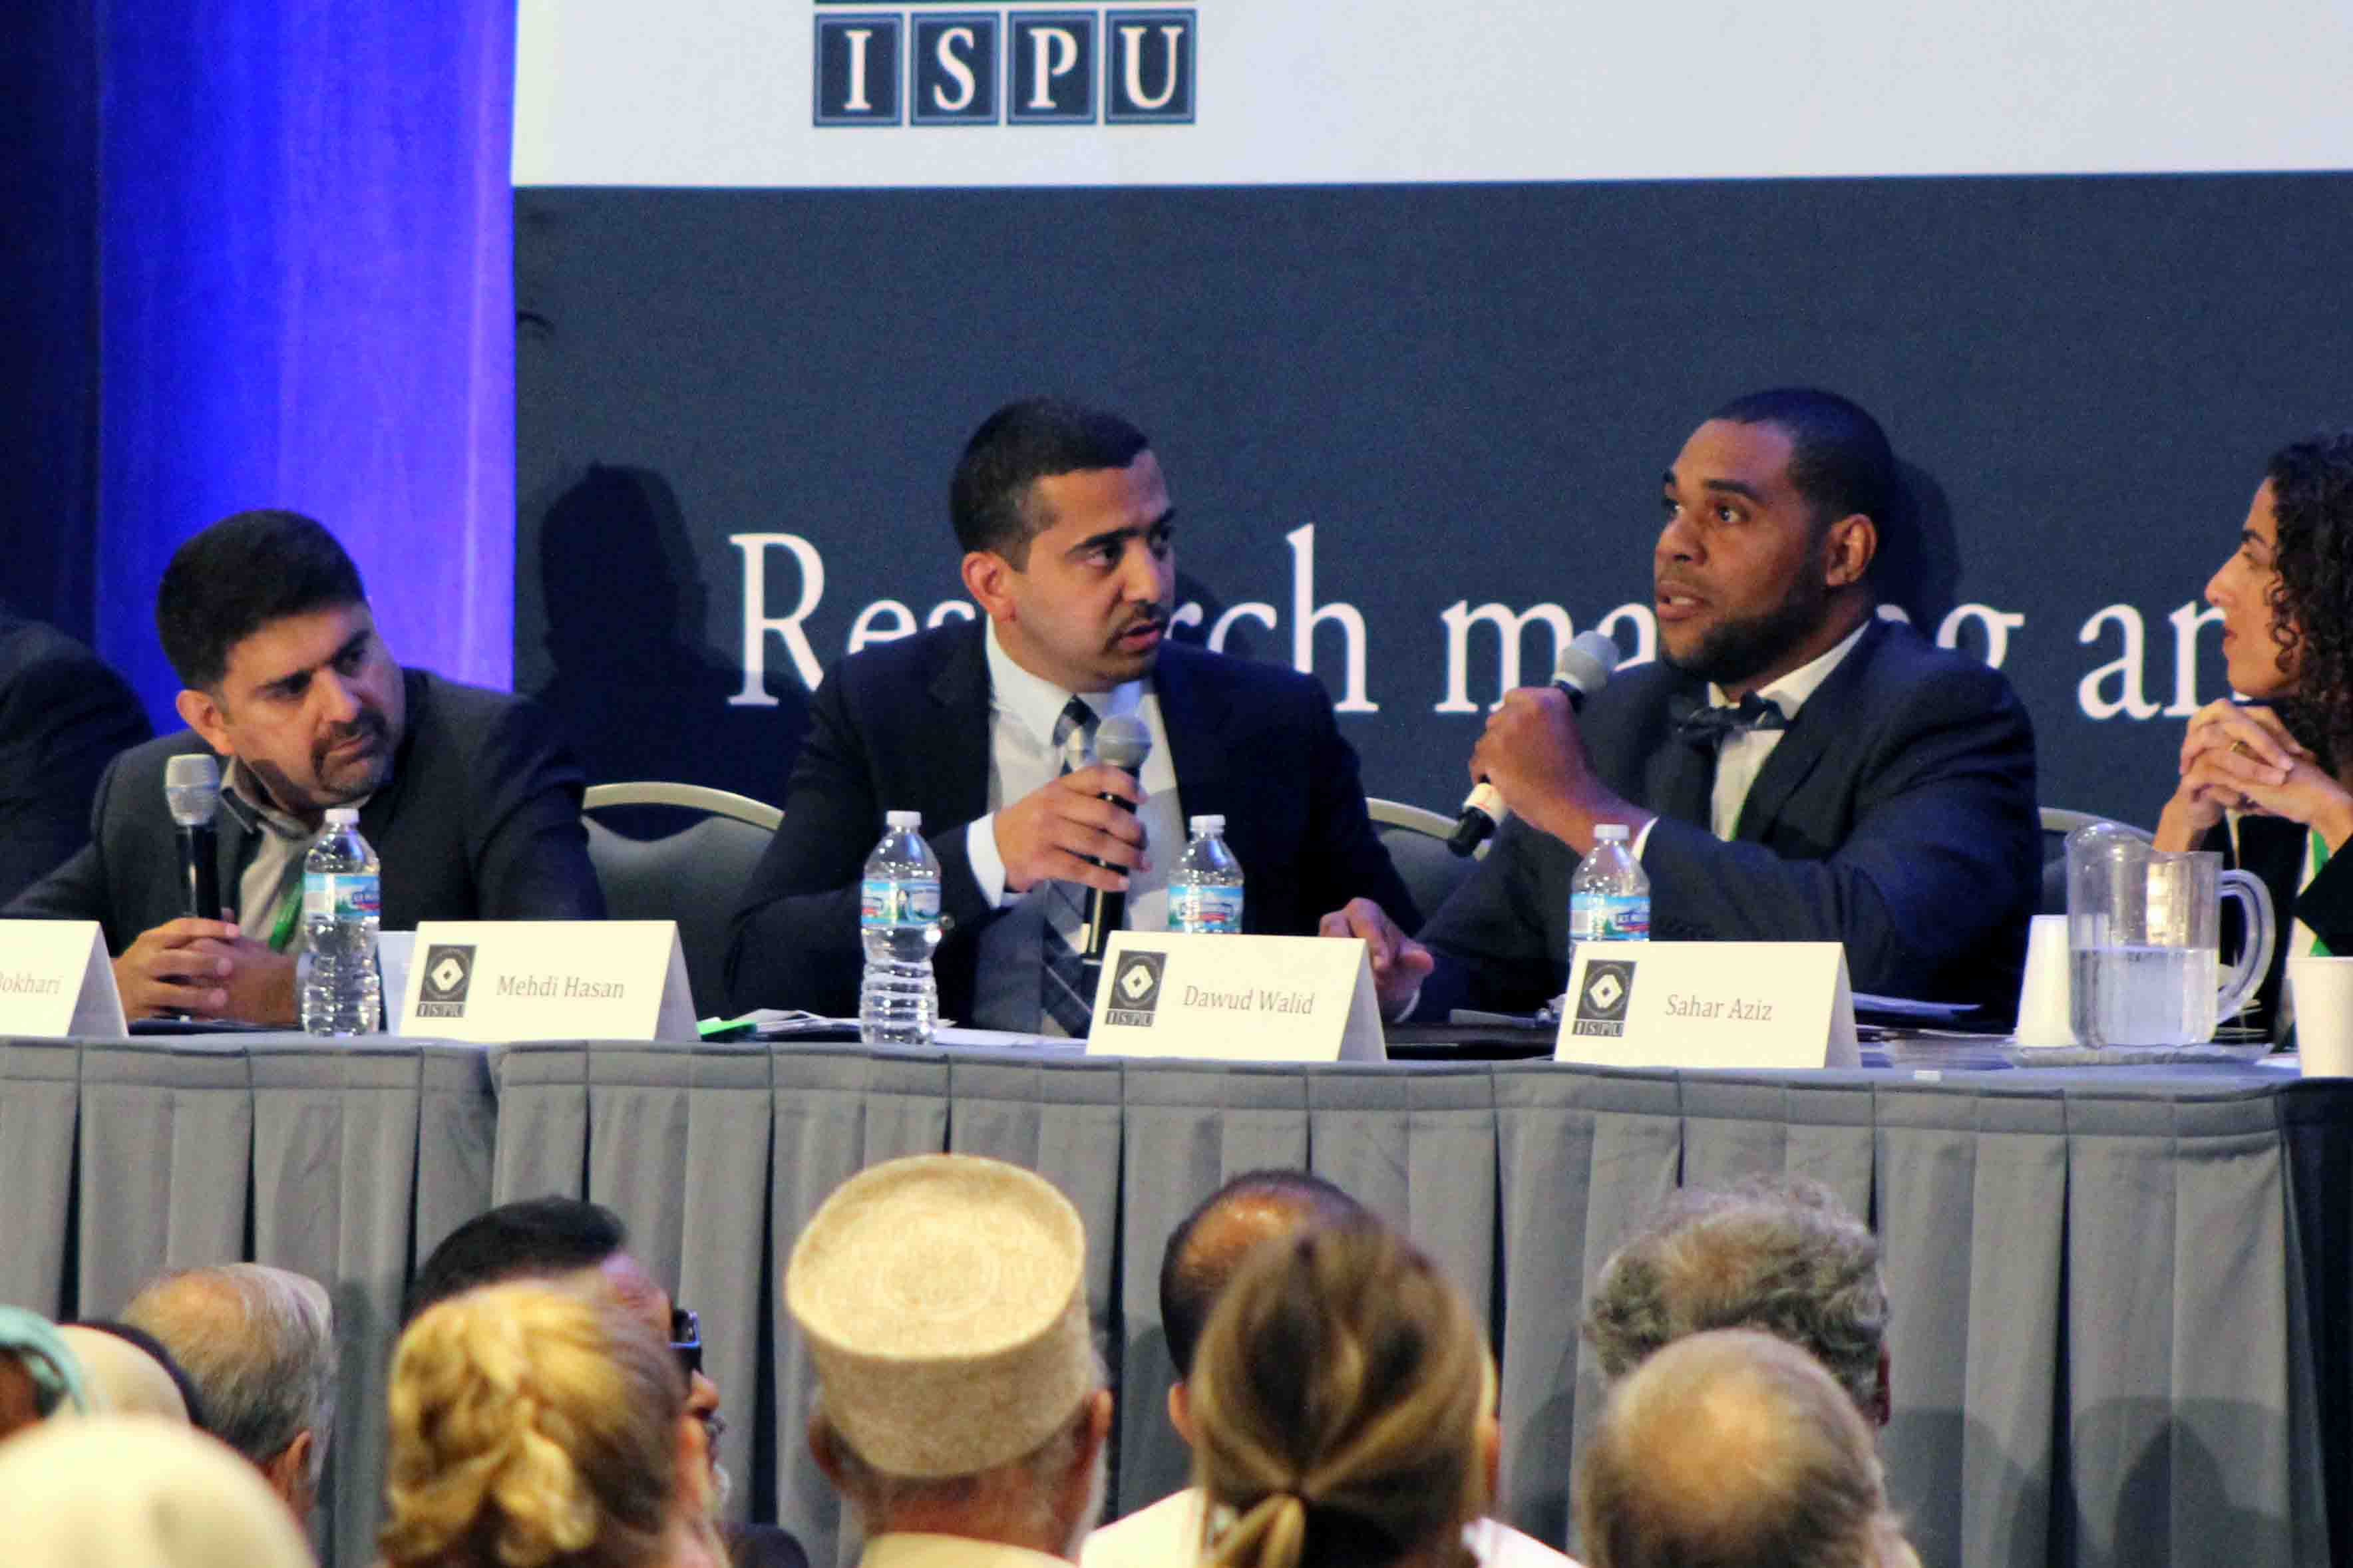 A panel of debaters with microphones facing a crowded room